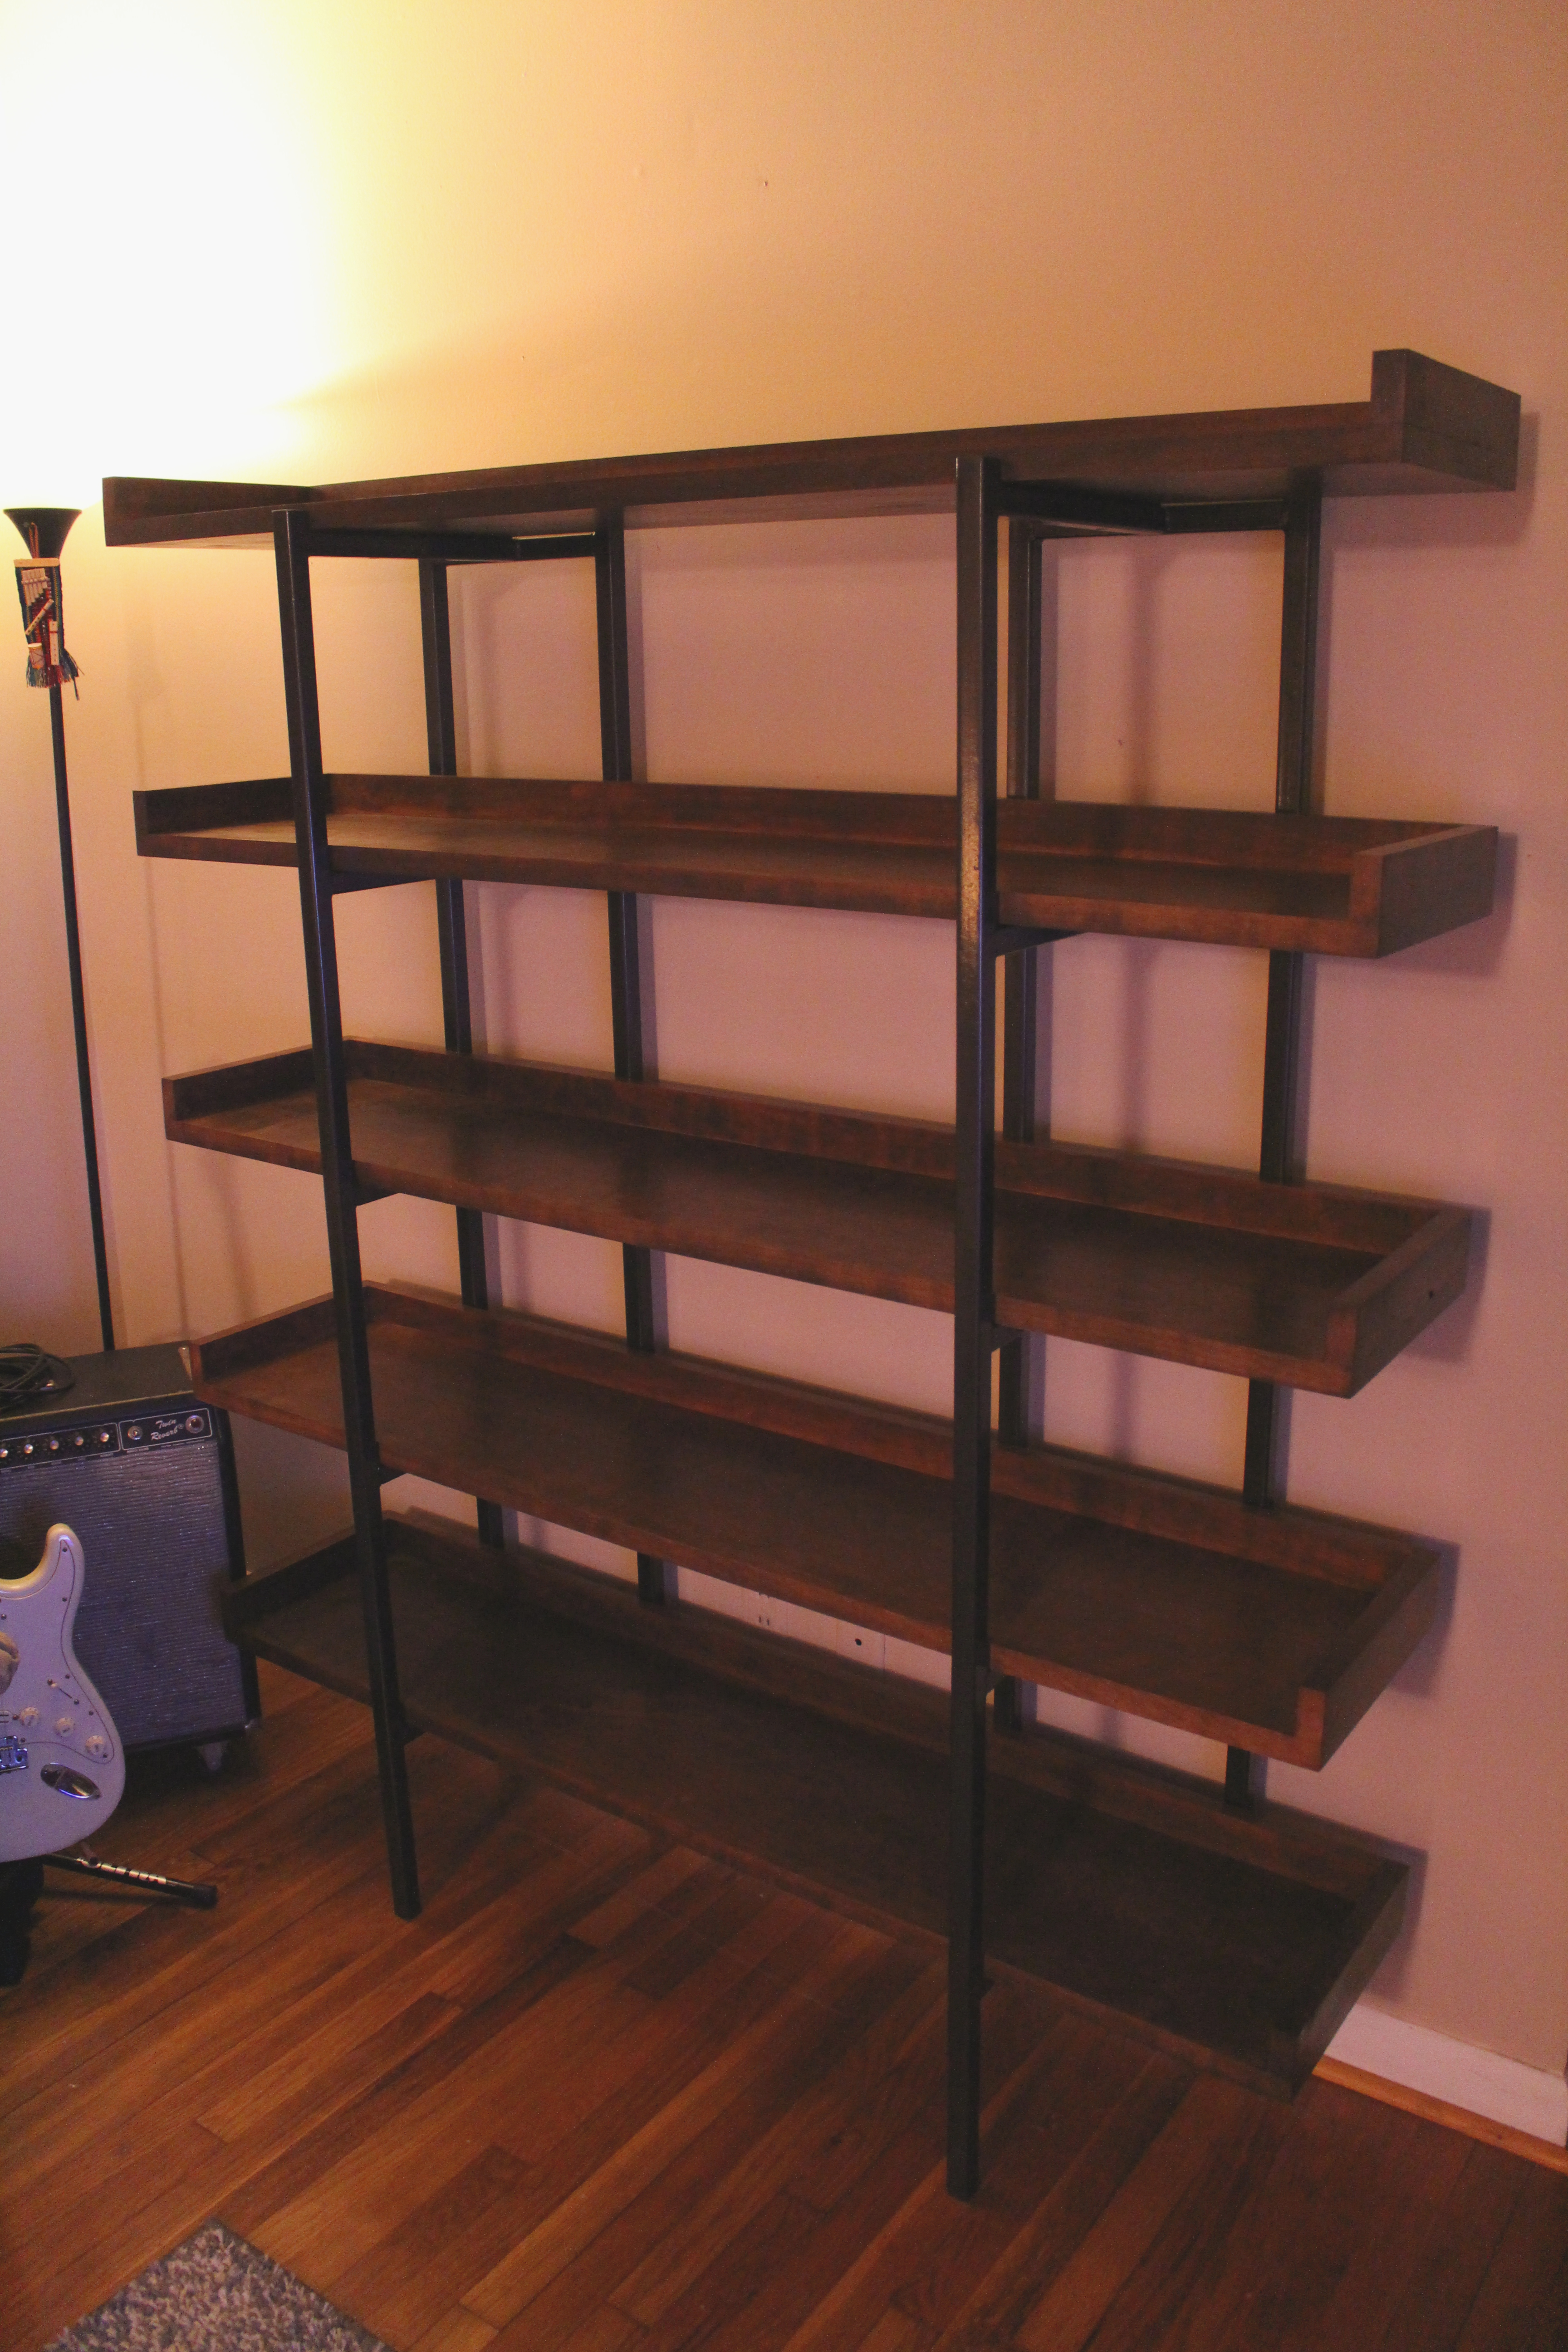 home dark tier bookcases barn bench overstock gray patio pitchfork bluebird and concepts shipping tucson acacia inch the today brown metal convenience garden bookcase wood product free